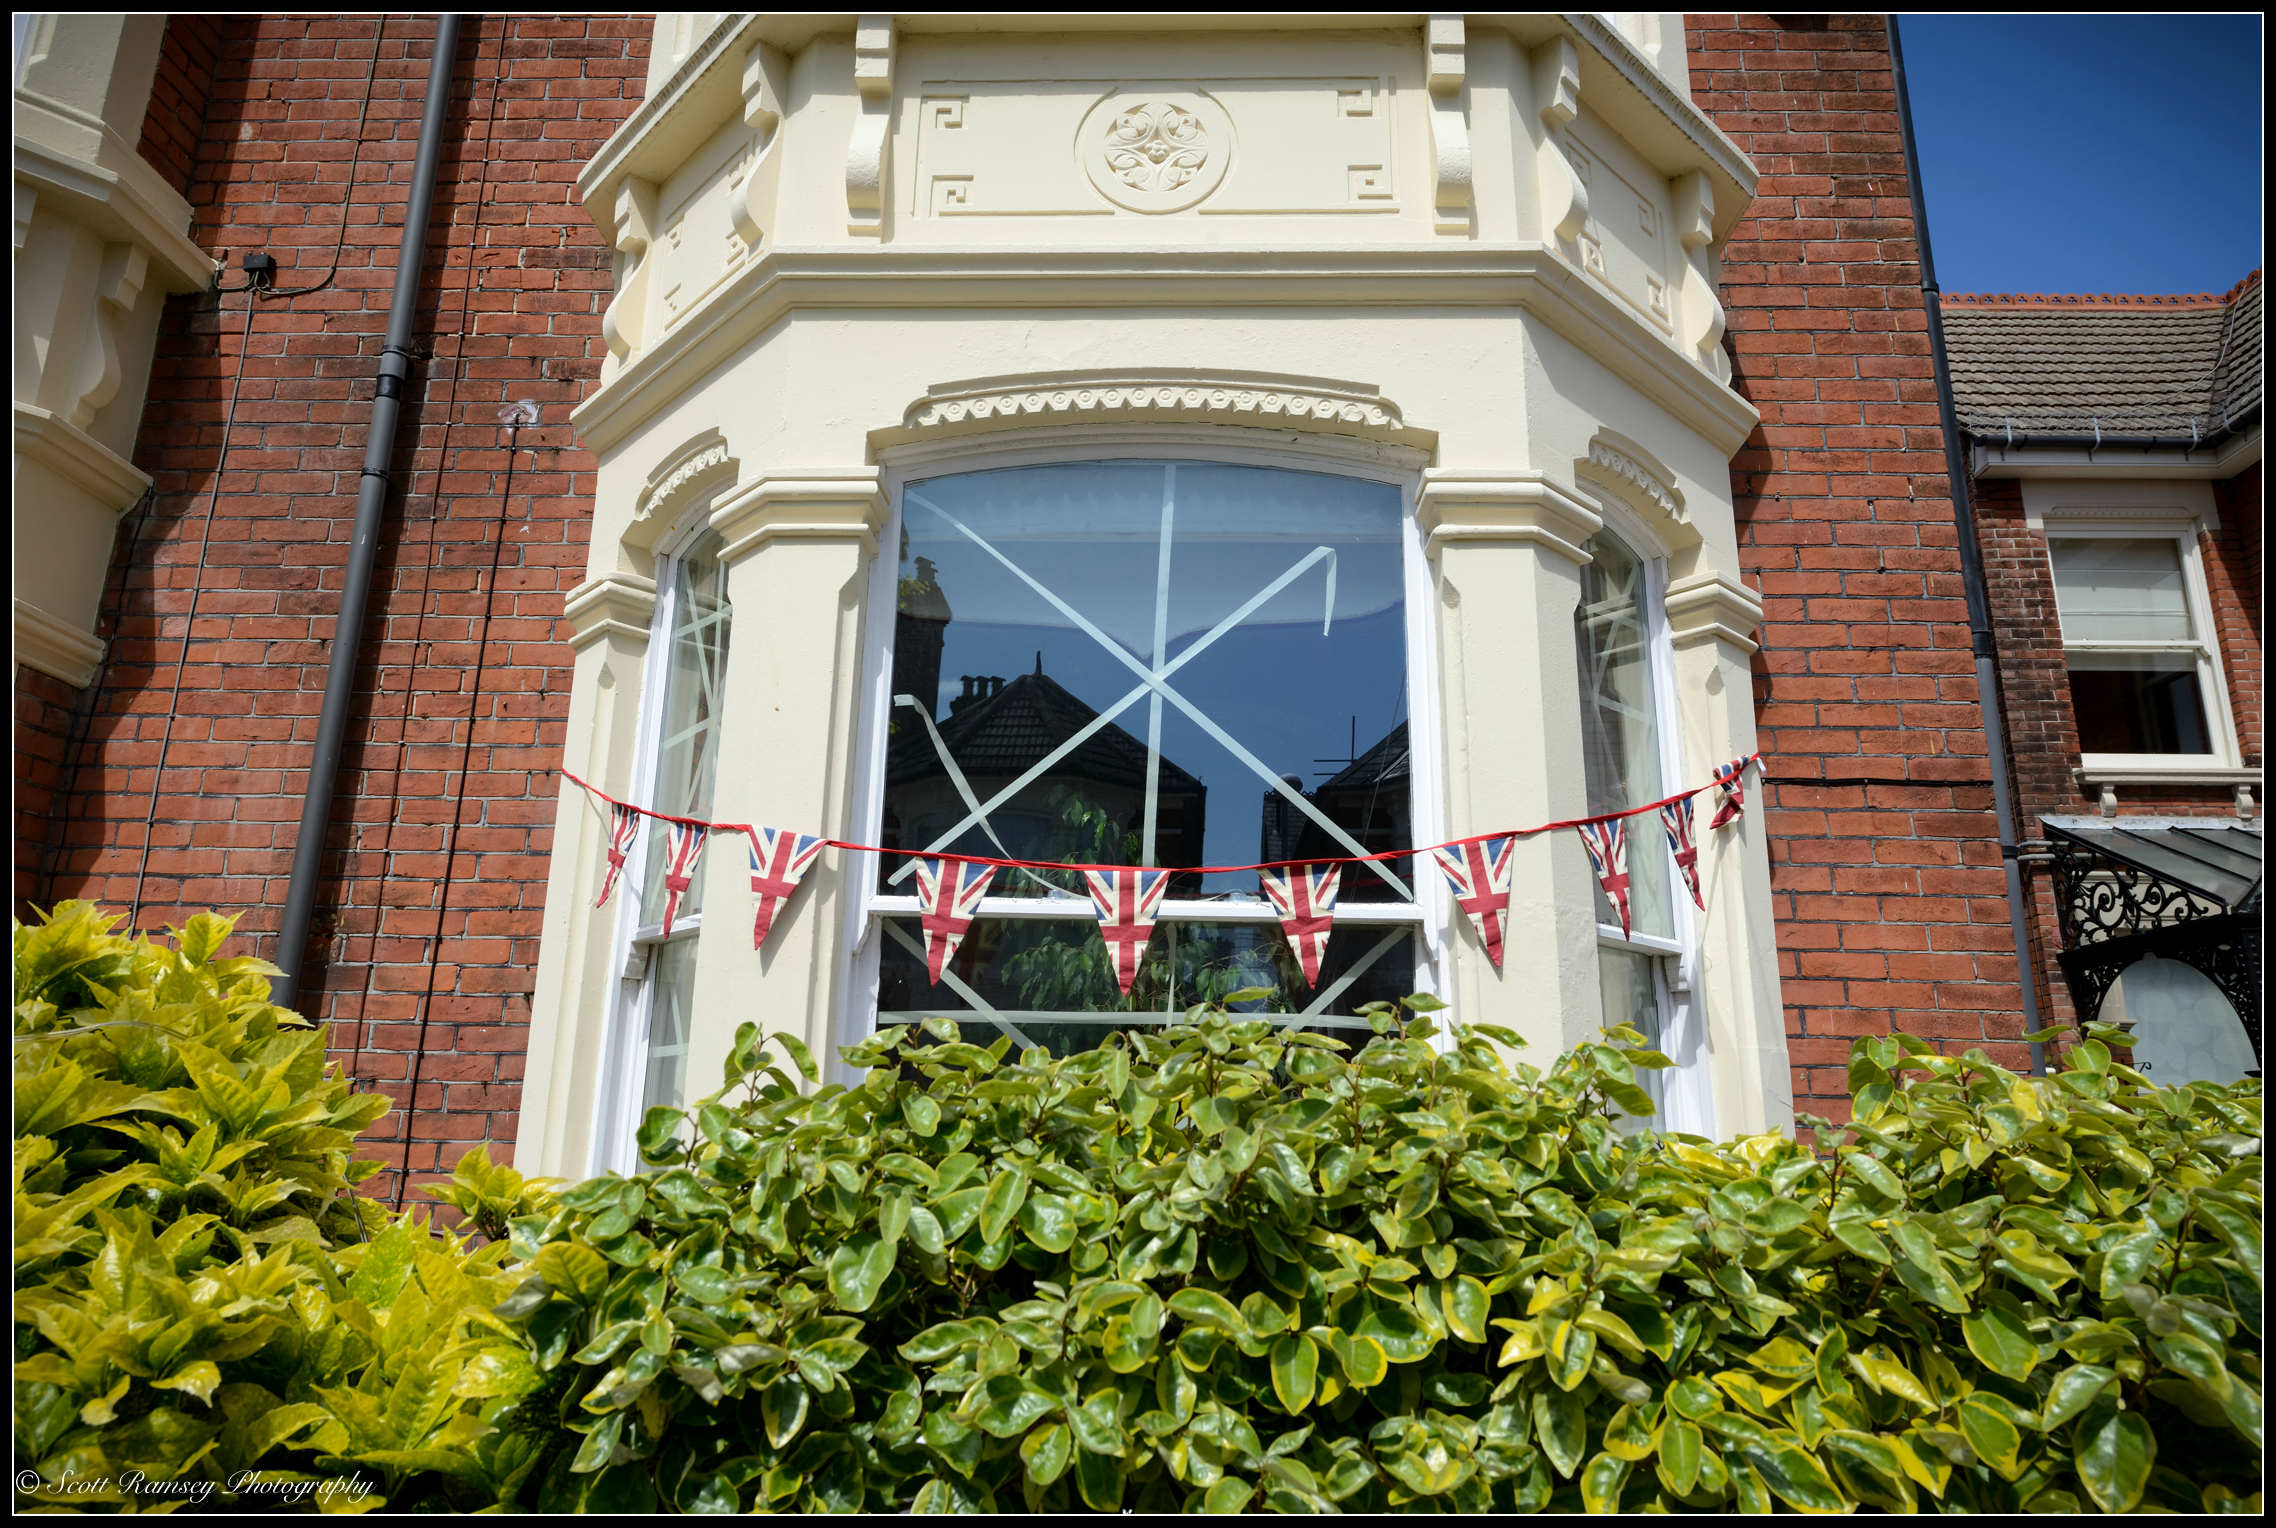 Recreating a scene from the original VE Day celebrations this Nettlecombe Avenue residenthas hung bunting up and stuck tape to the windows of their house in Southsea, Portsmouth, UK during the VE Day 70th anniversary street party.© Scott Ramsey Photography.